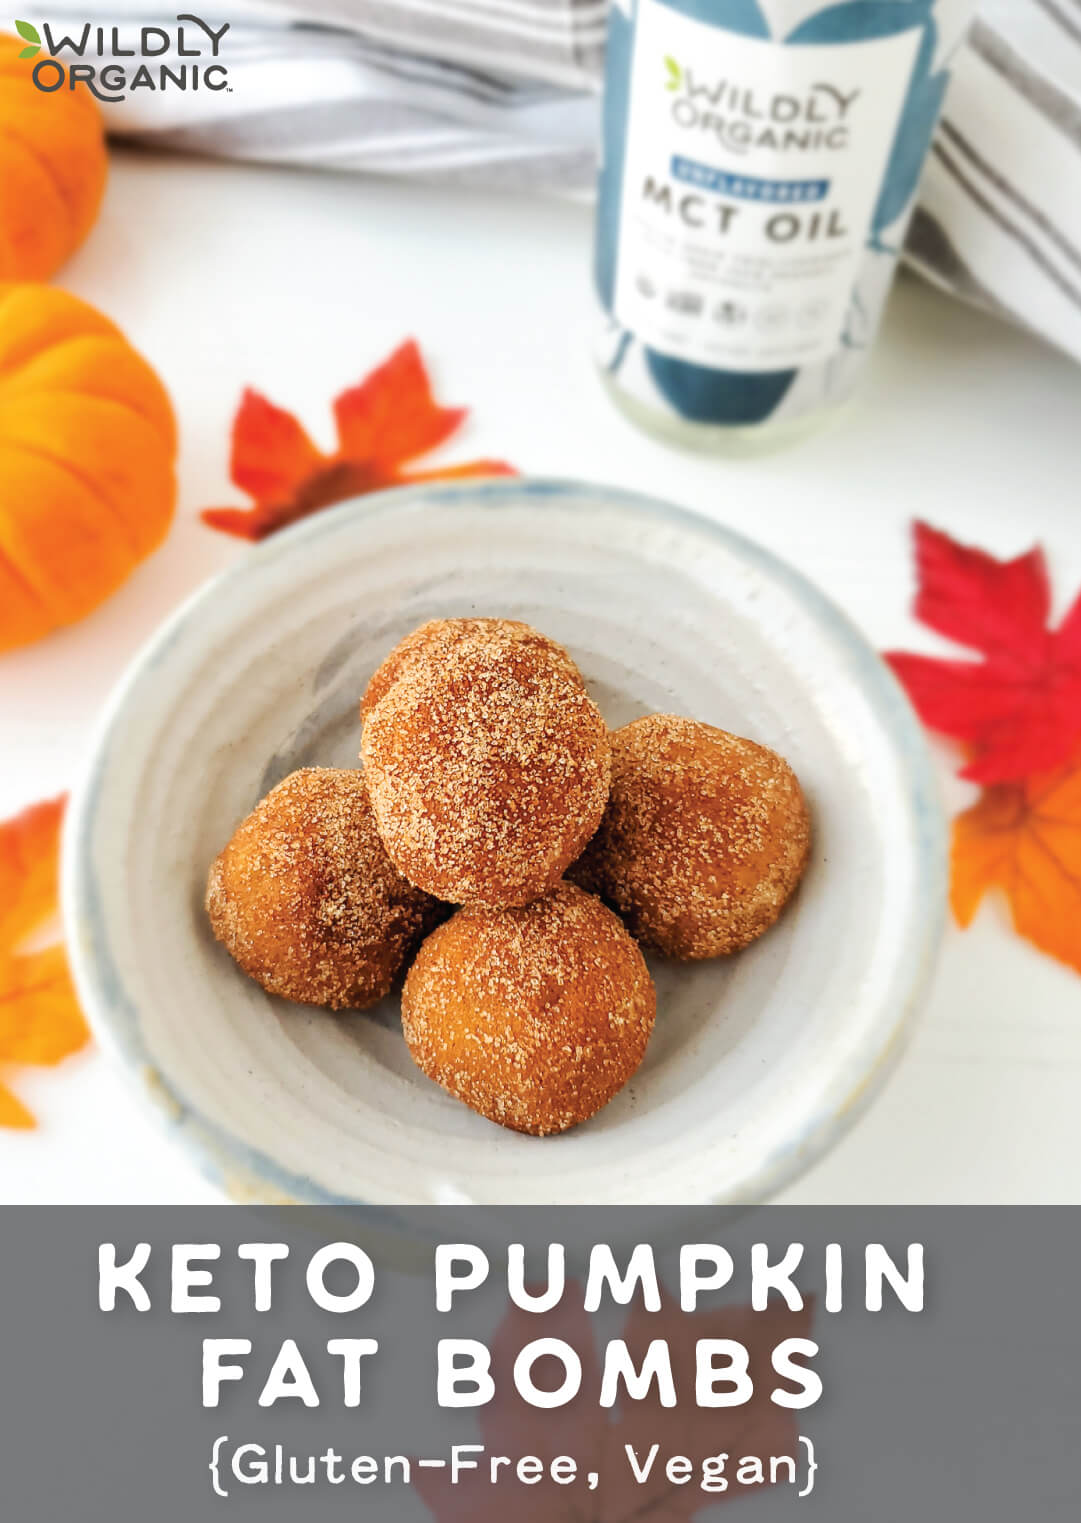 Keto Pumpkin Fat Bombs {Vegan, Gluten-Free}